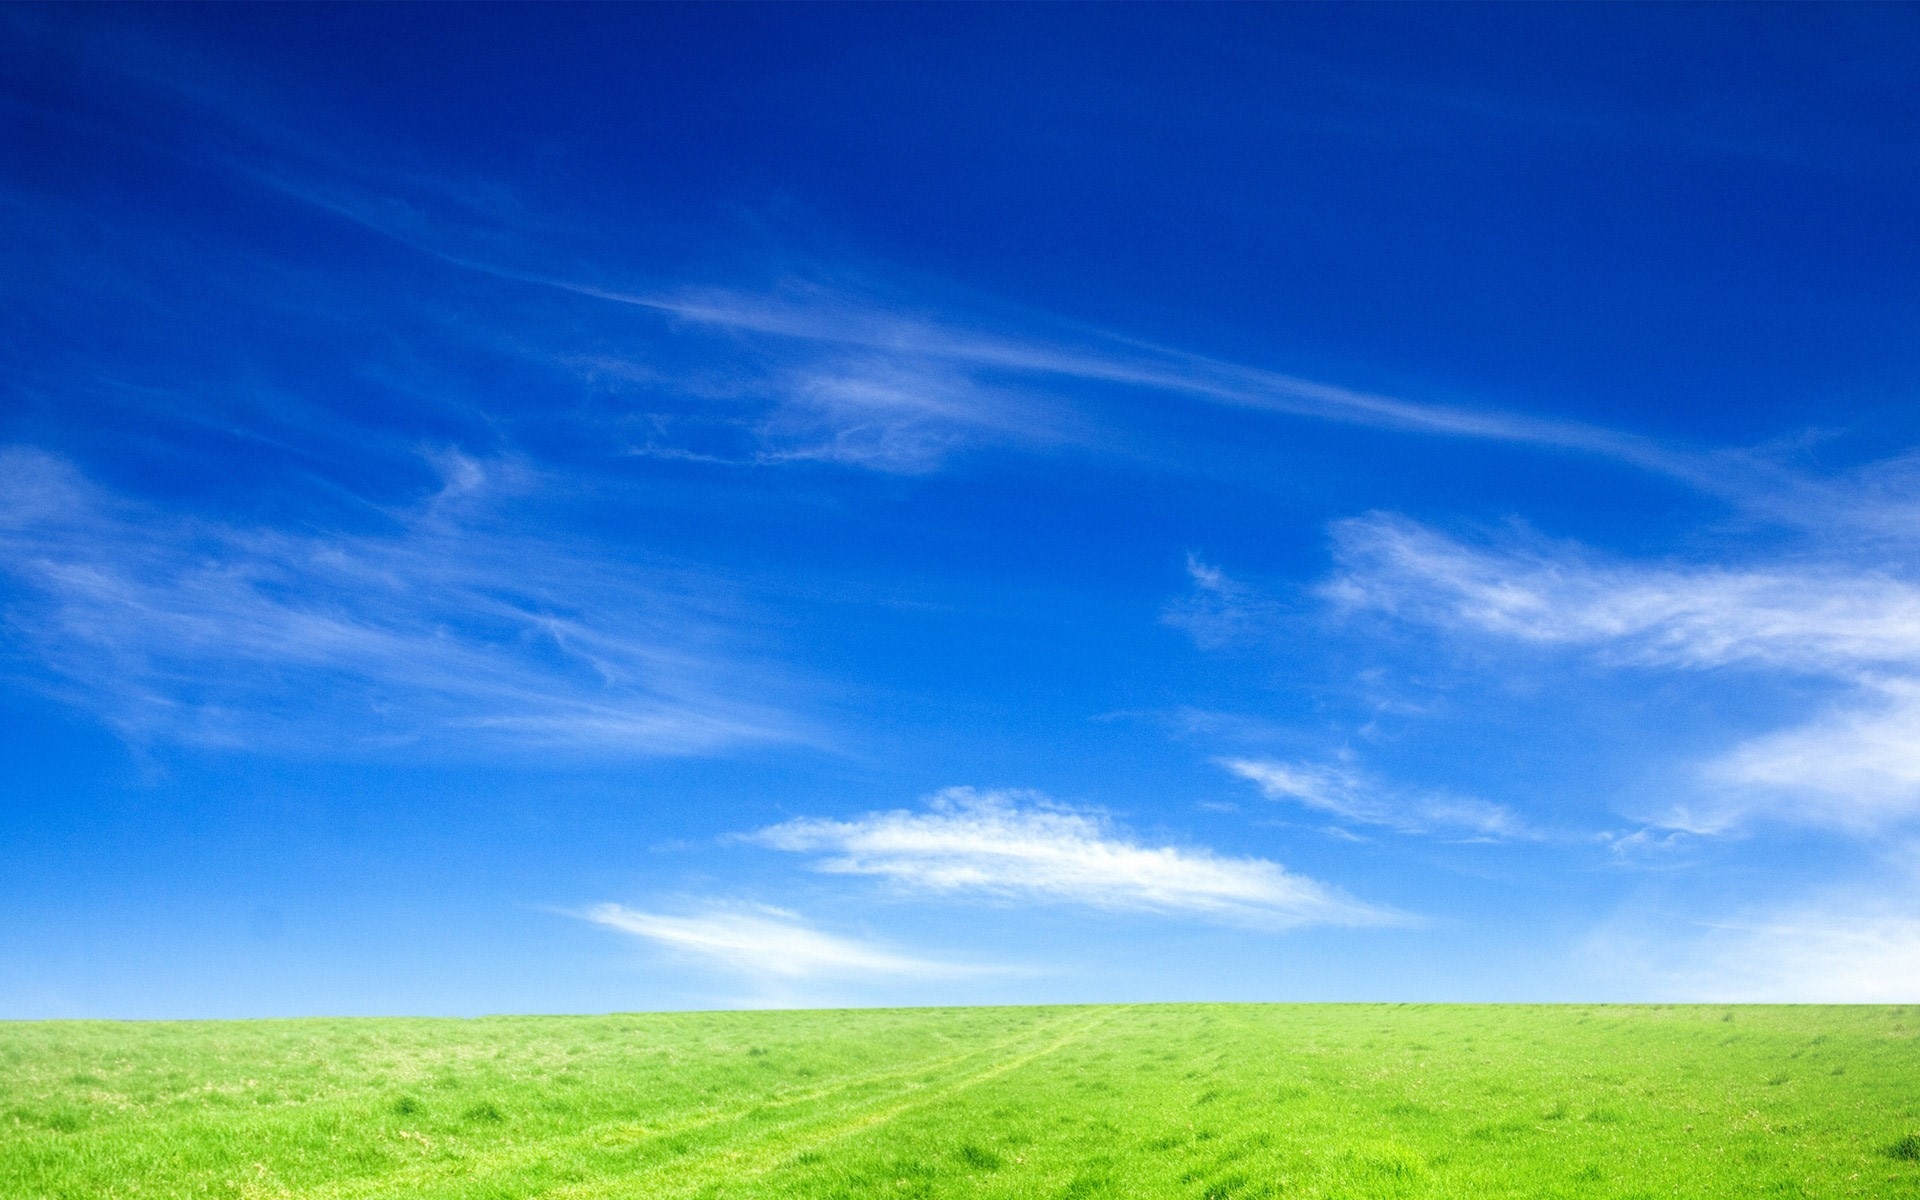 1920x1200 Blue Sky And Green Grass Wallpaper  340x220